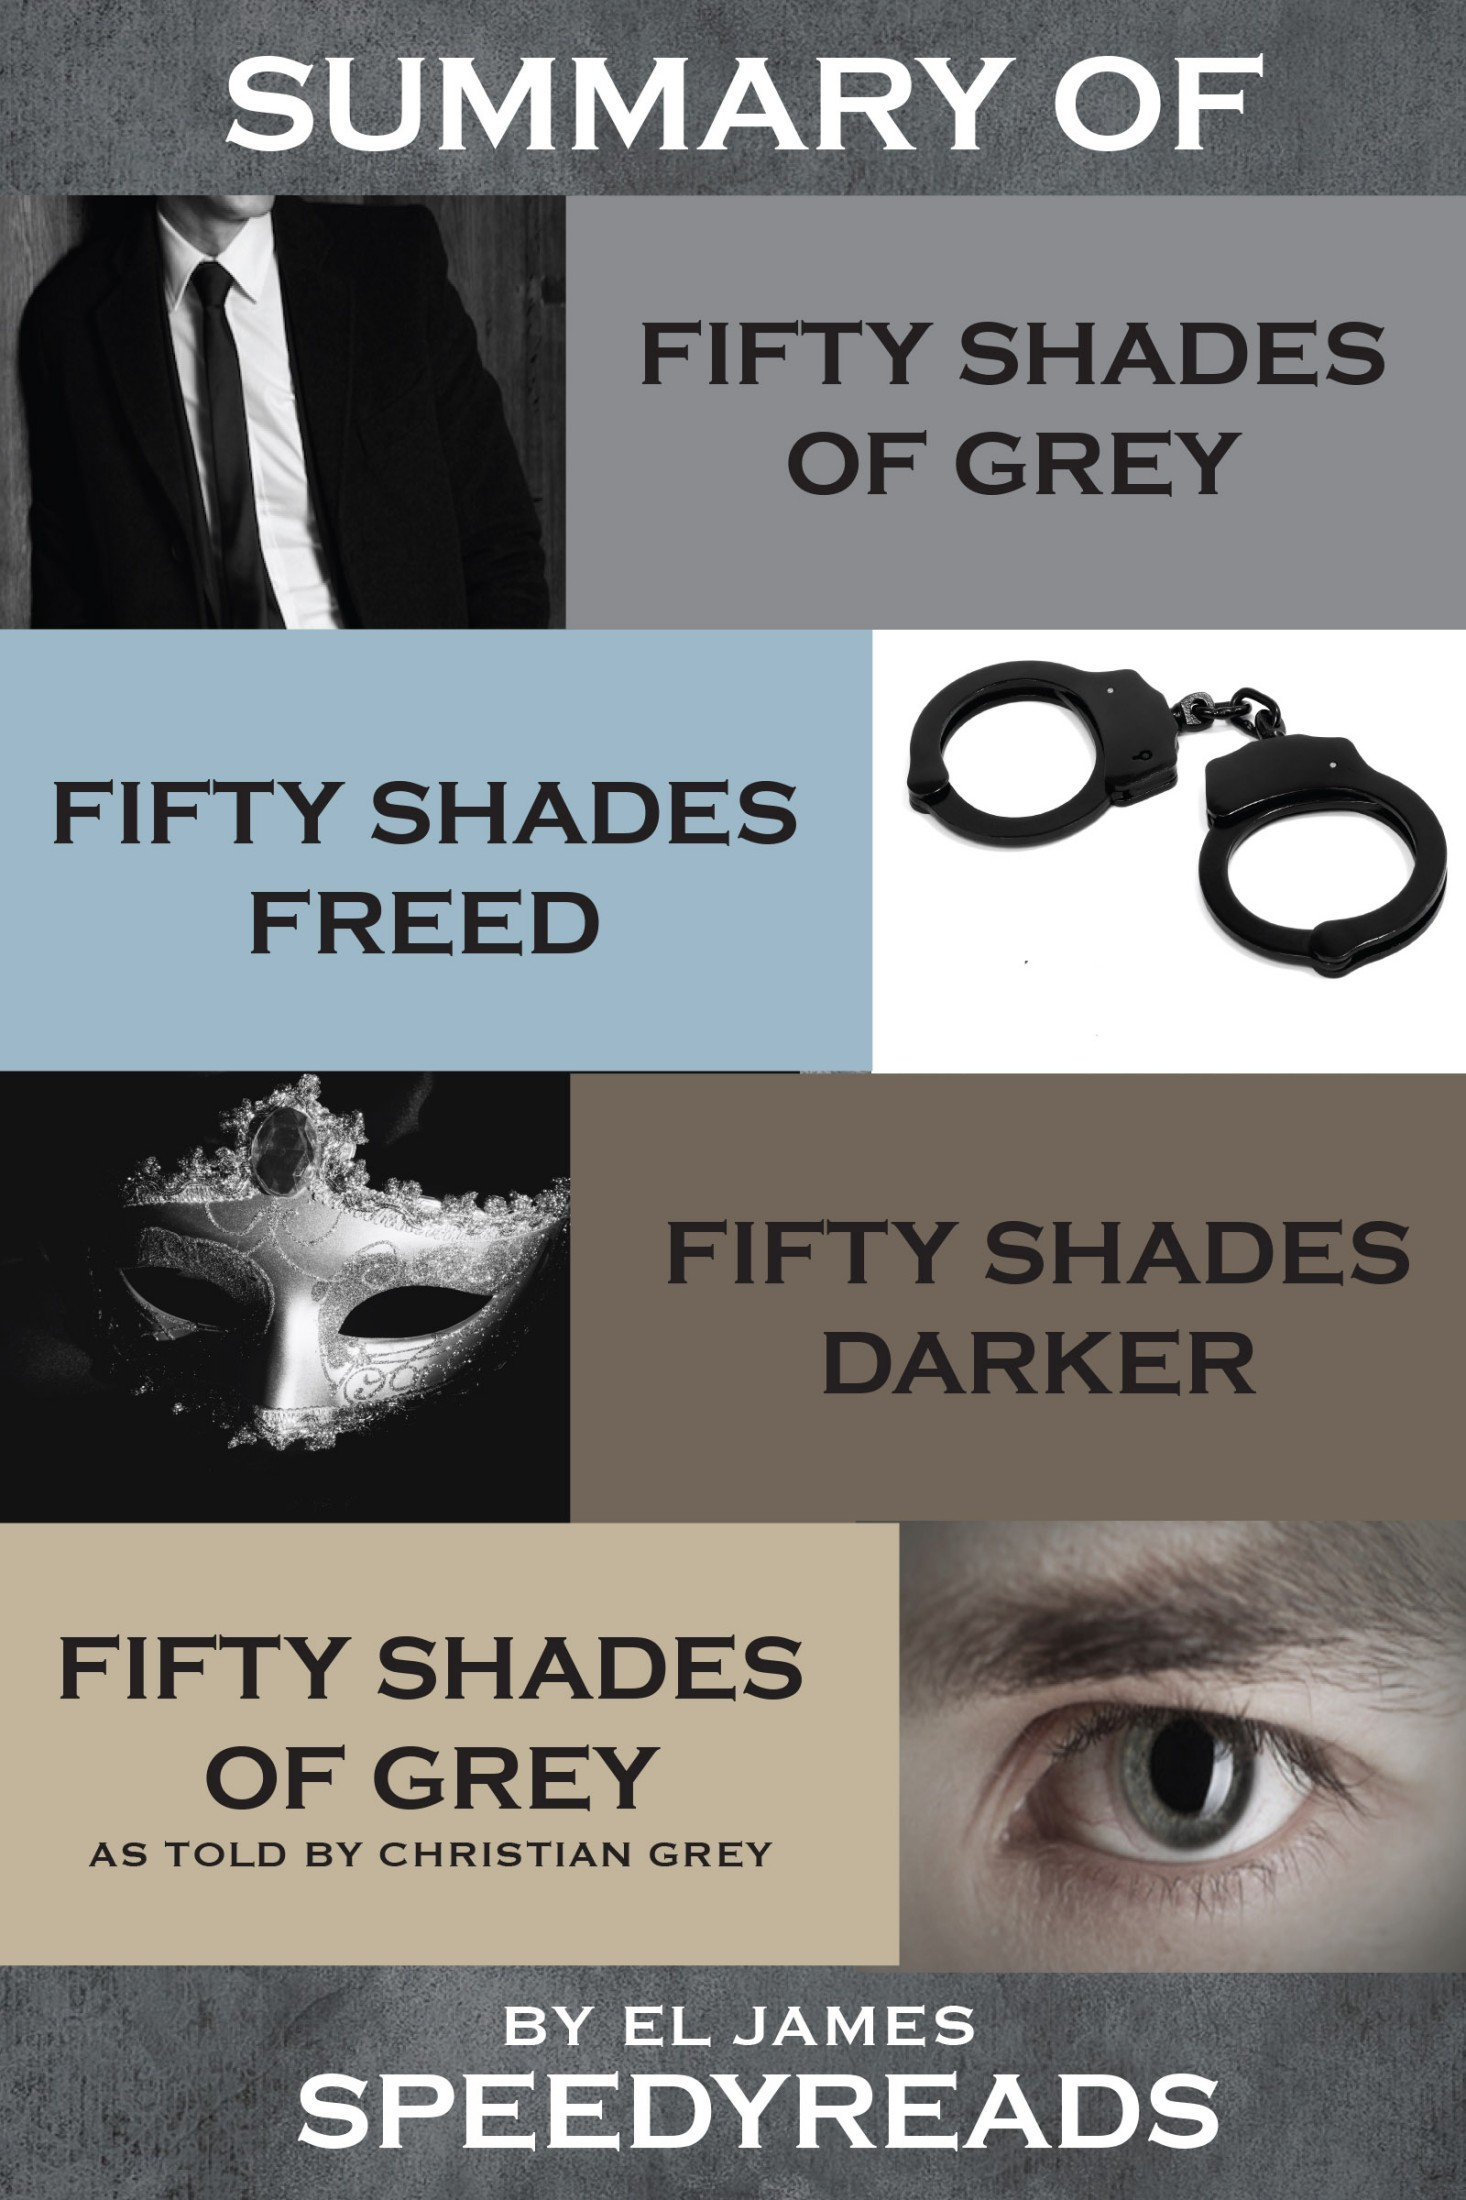 Summary of Fifty Shades of Grey, Fifty Shades Freed, Fifty Shades Darker, and Grey: Fifty Shades of Grey as told by Christian